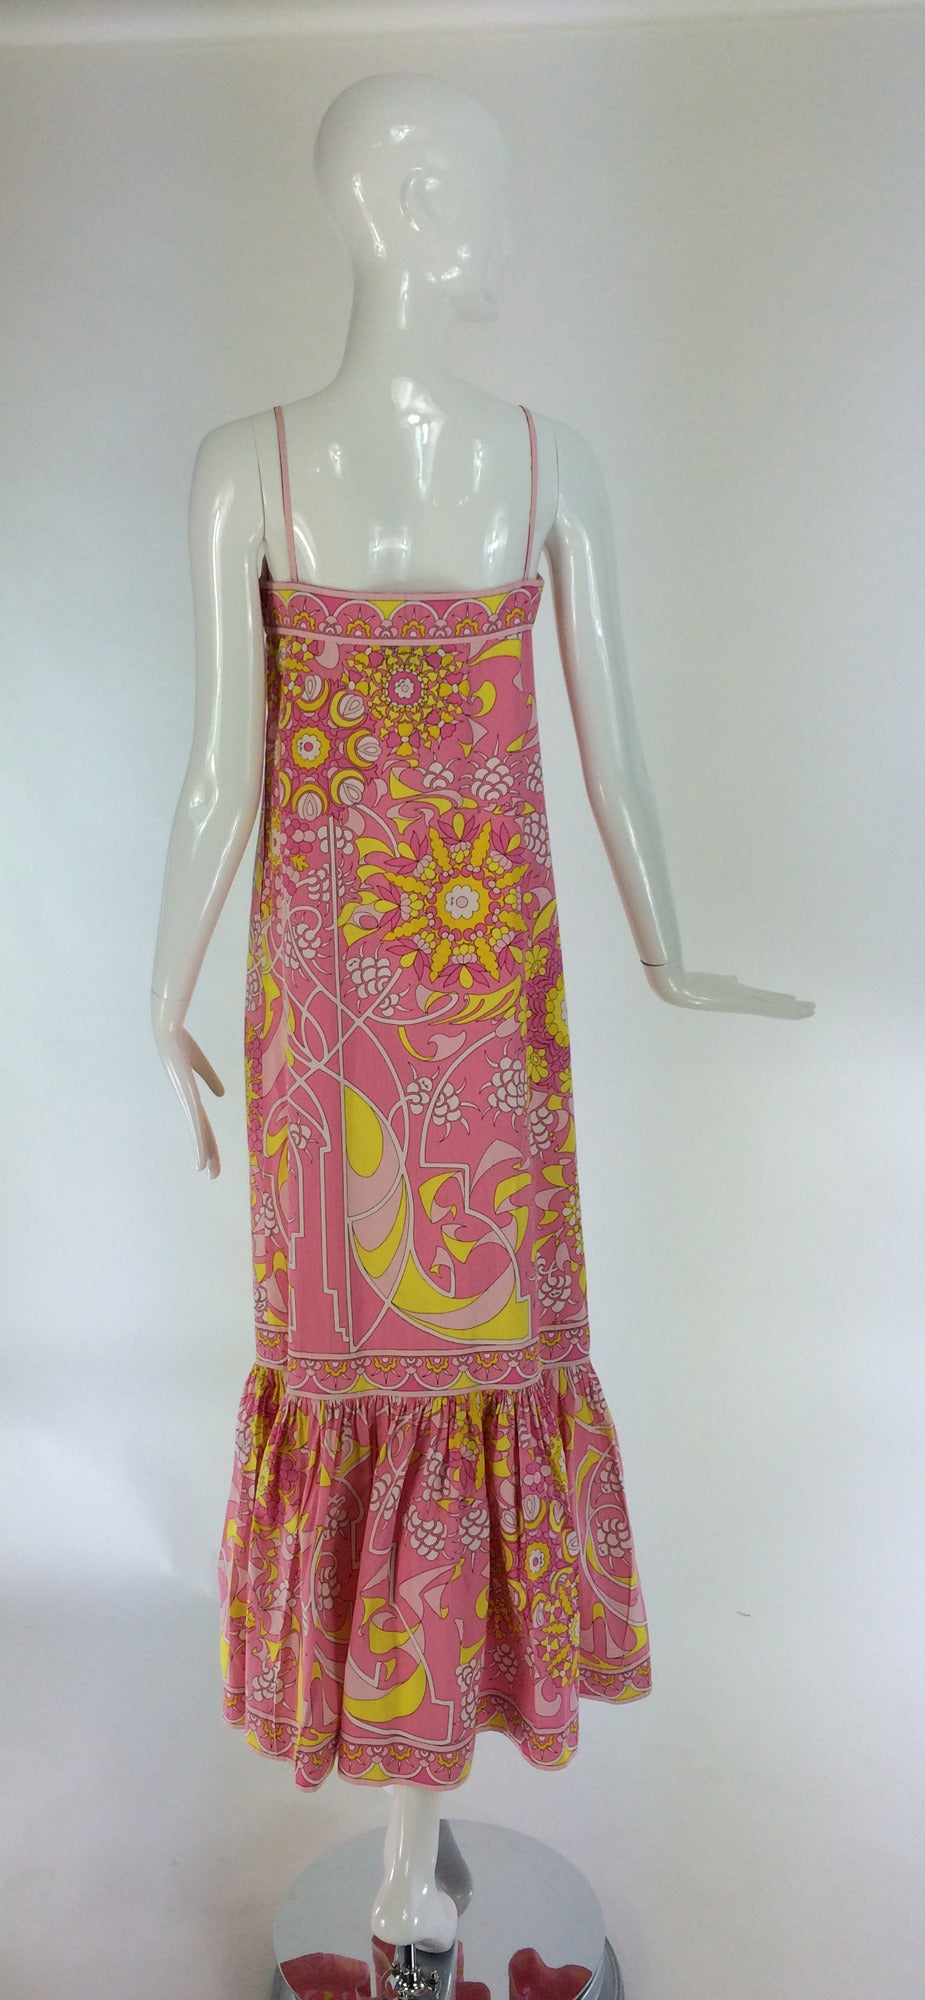 Emilio Pucci printed cotton maxi dress out of the ordinary design 1960s 7